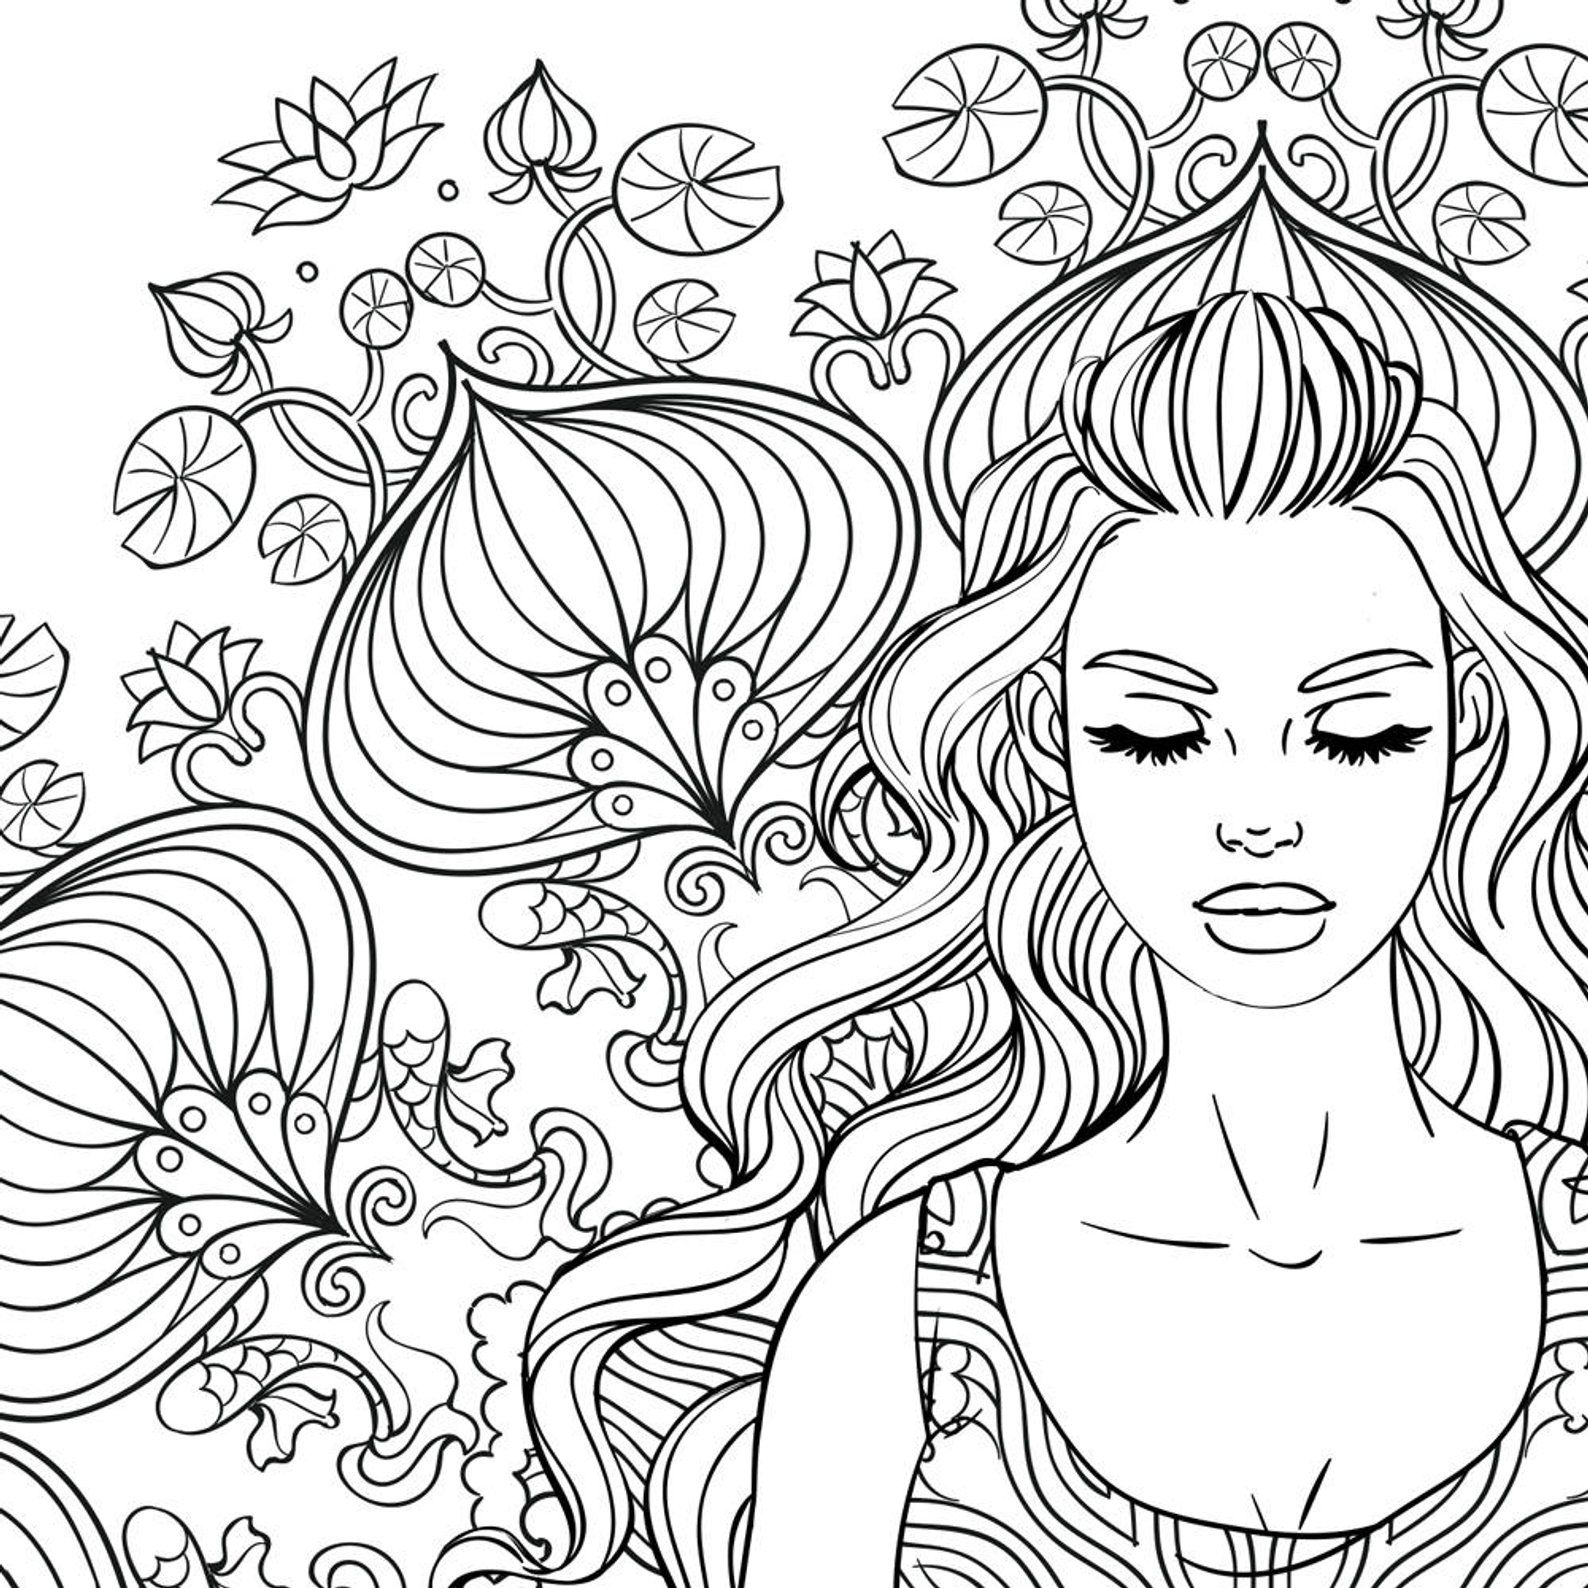 Adult Coloring Page Mandala Girl   Adult coloring page ...